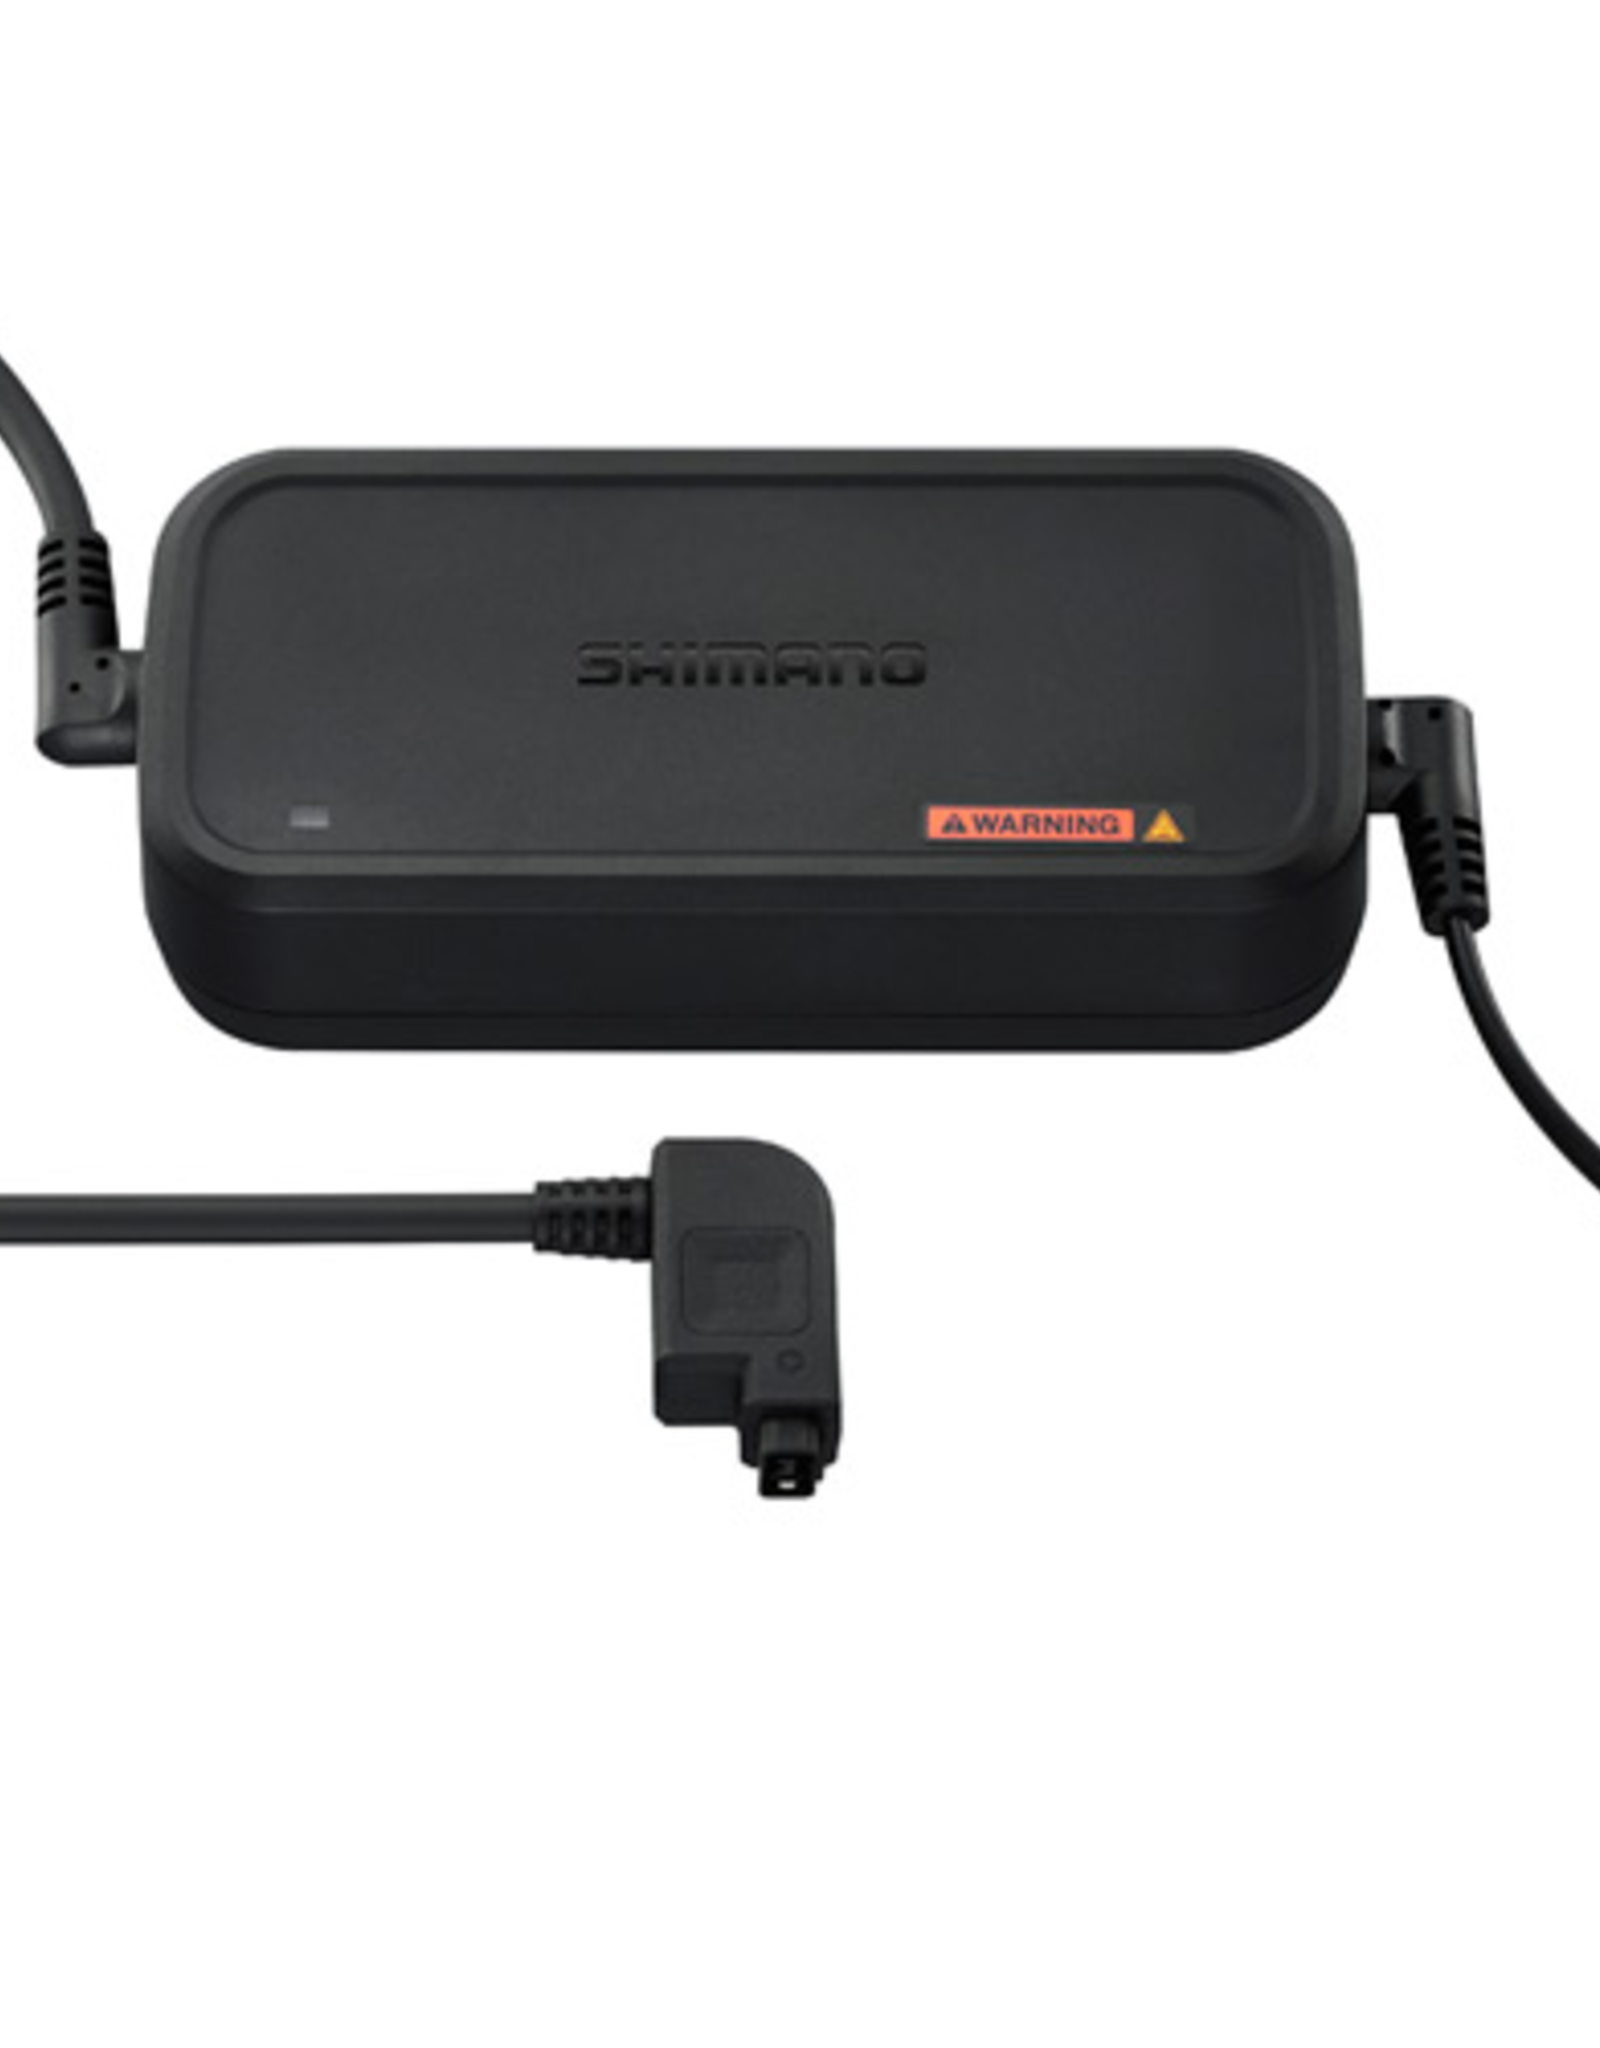 EC-E8004 Steps battery charger, built in power cable for UK plug